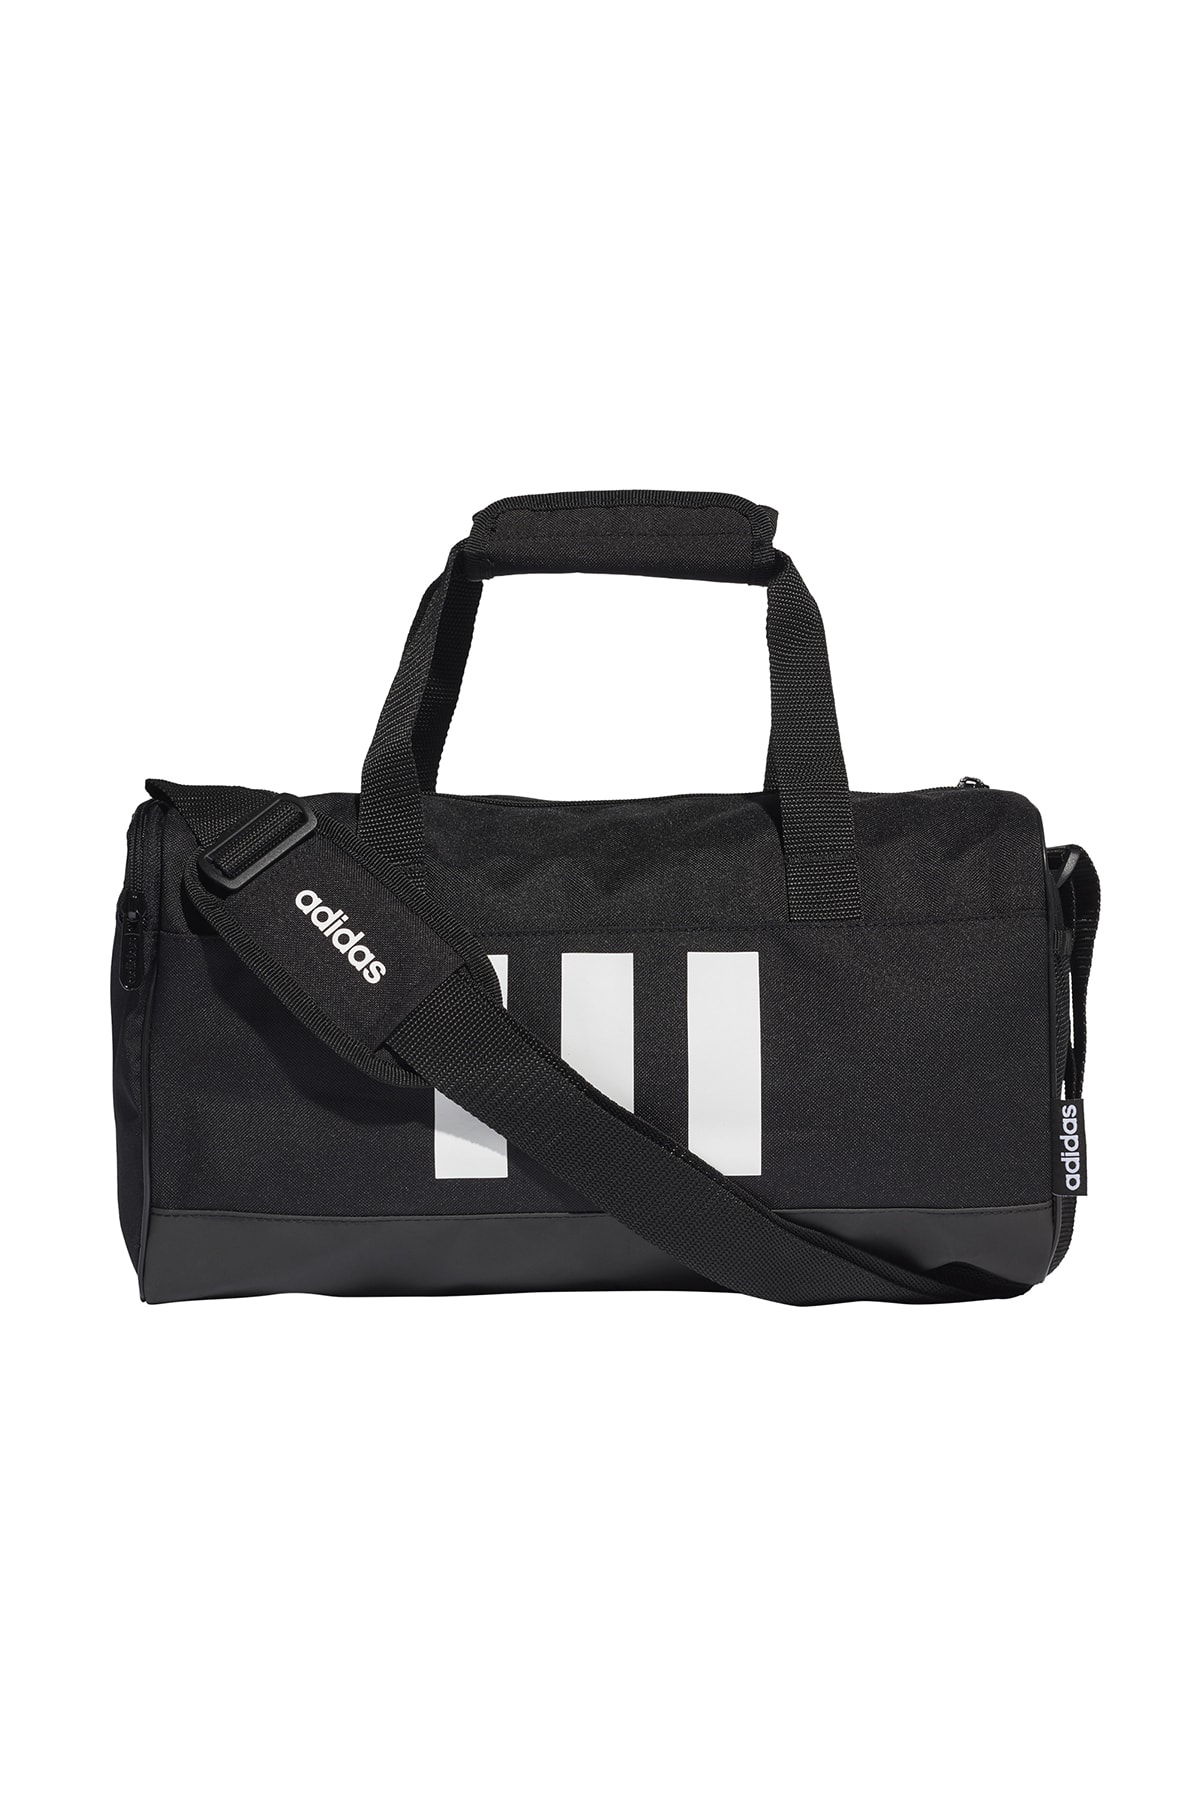 adidas 3-Stripes Duffel Bag Extra Small Training Spor Çanta 0